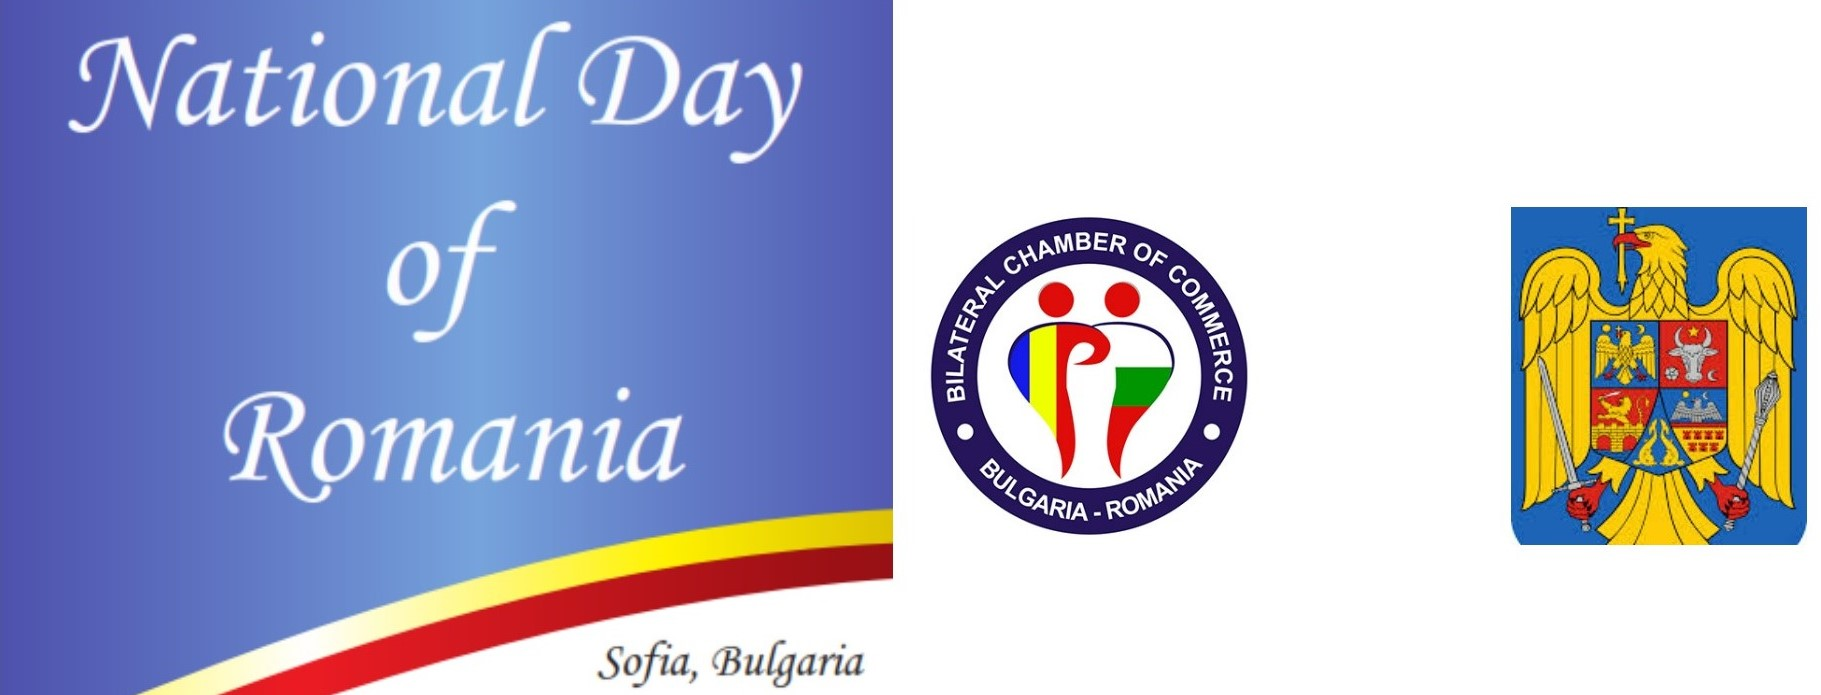 National Day of Romania event